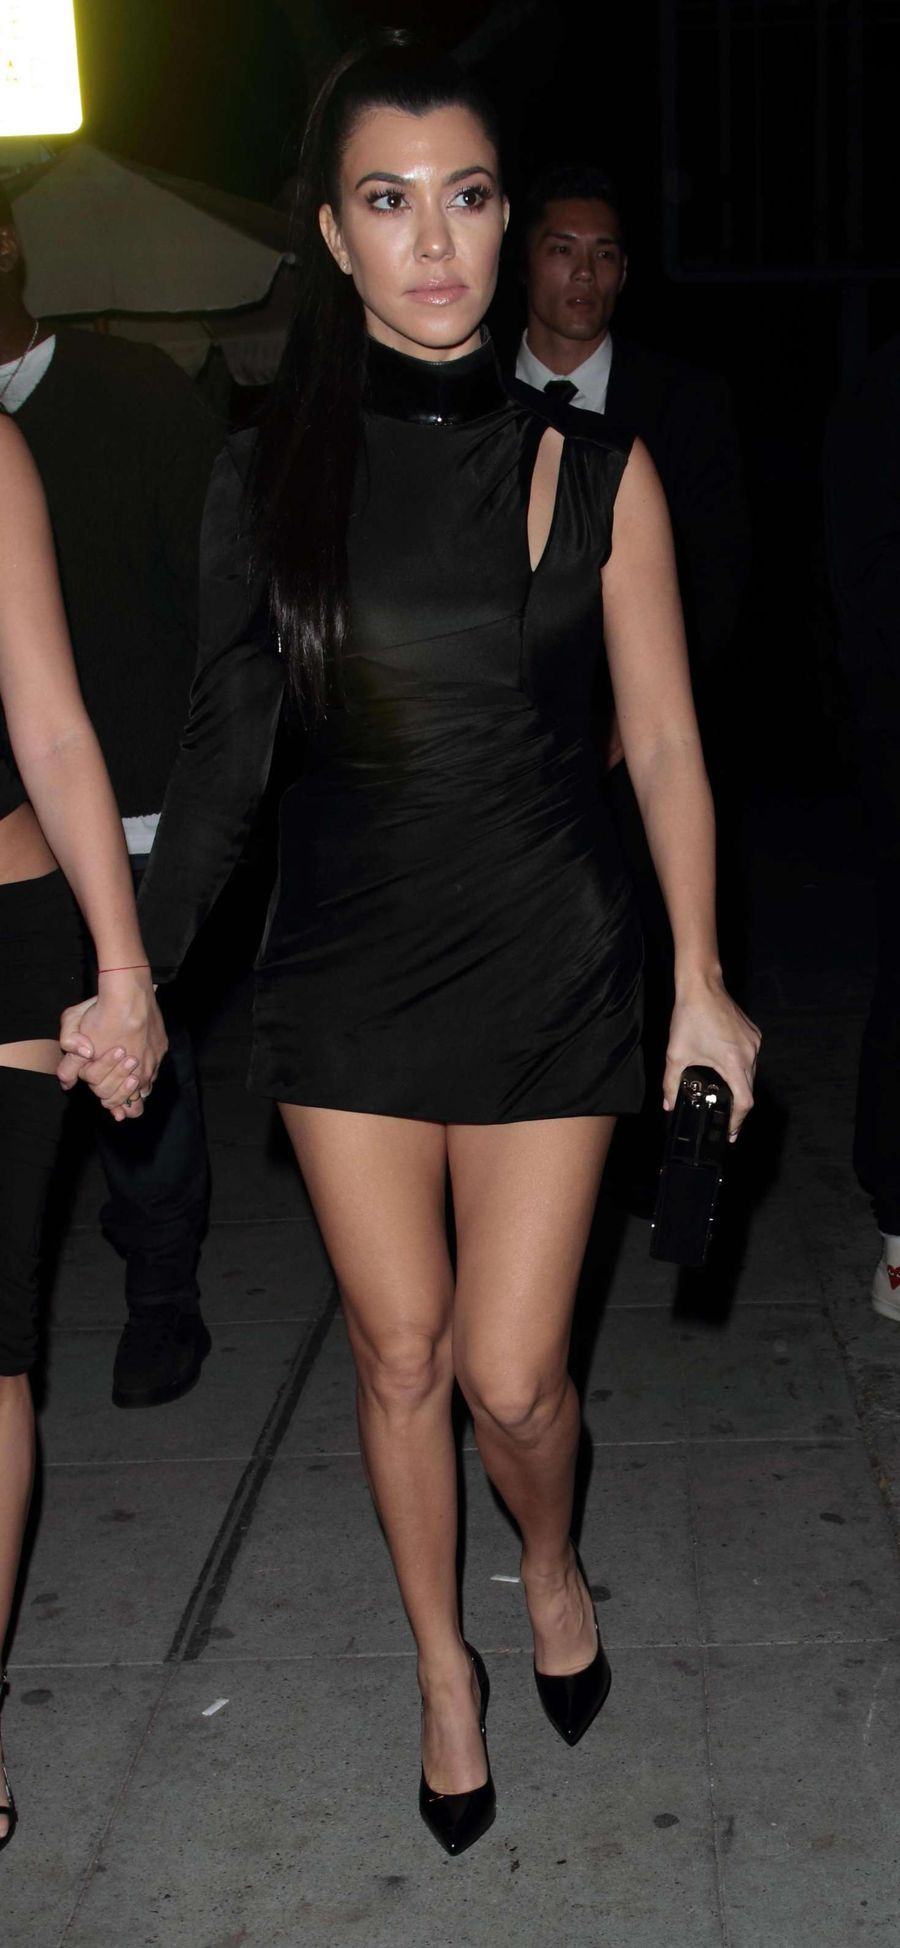 Kourtney Kardashian in a little black dress at Delilah